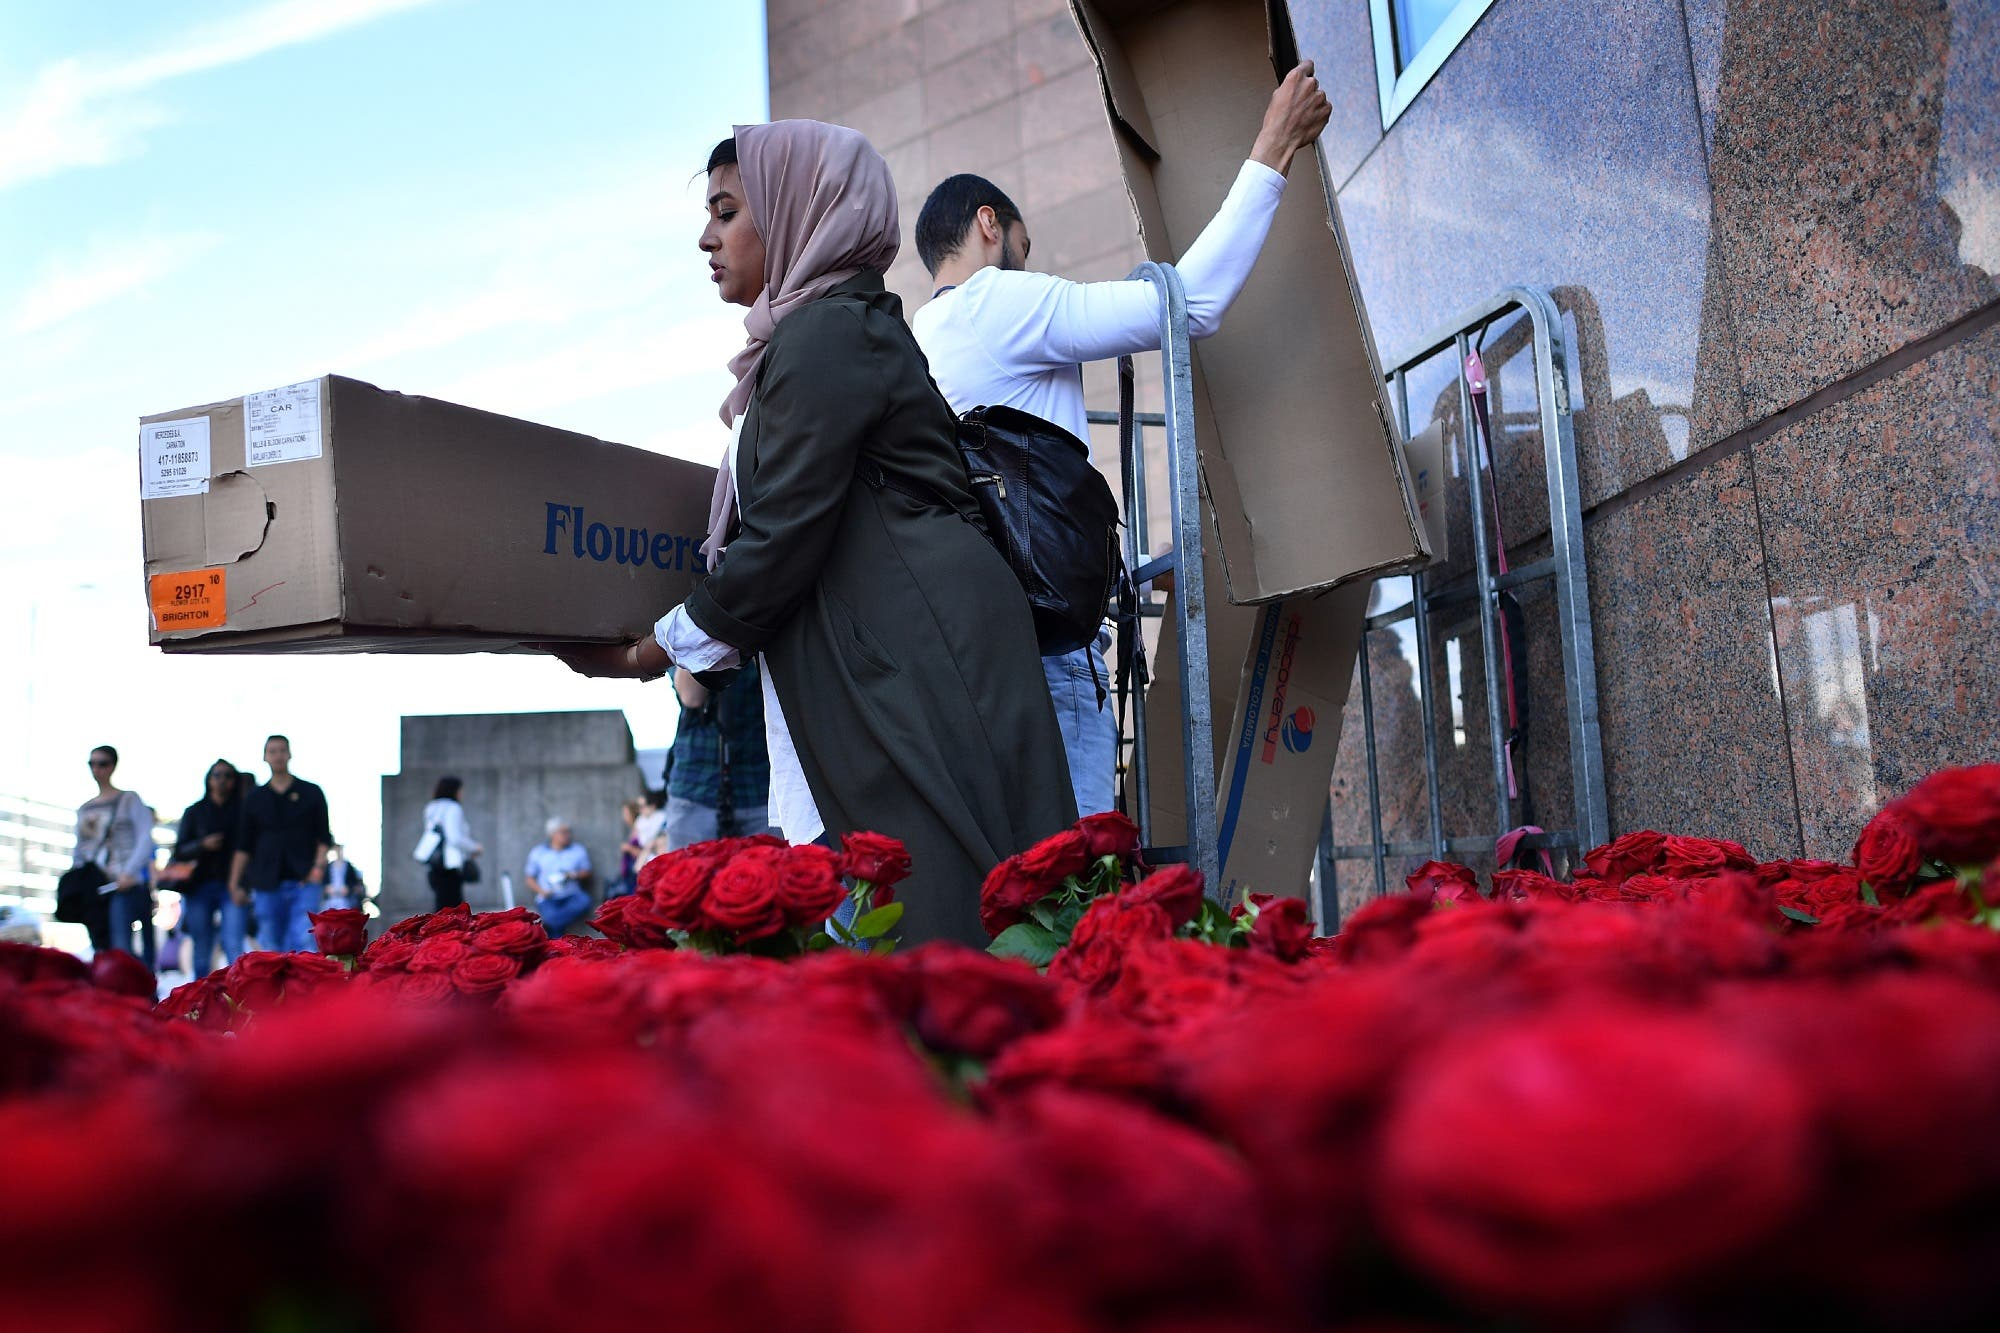 roses being handed out on London Bridge